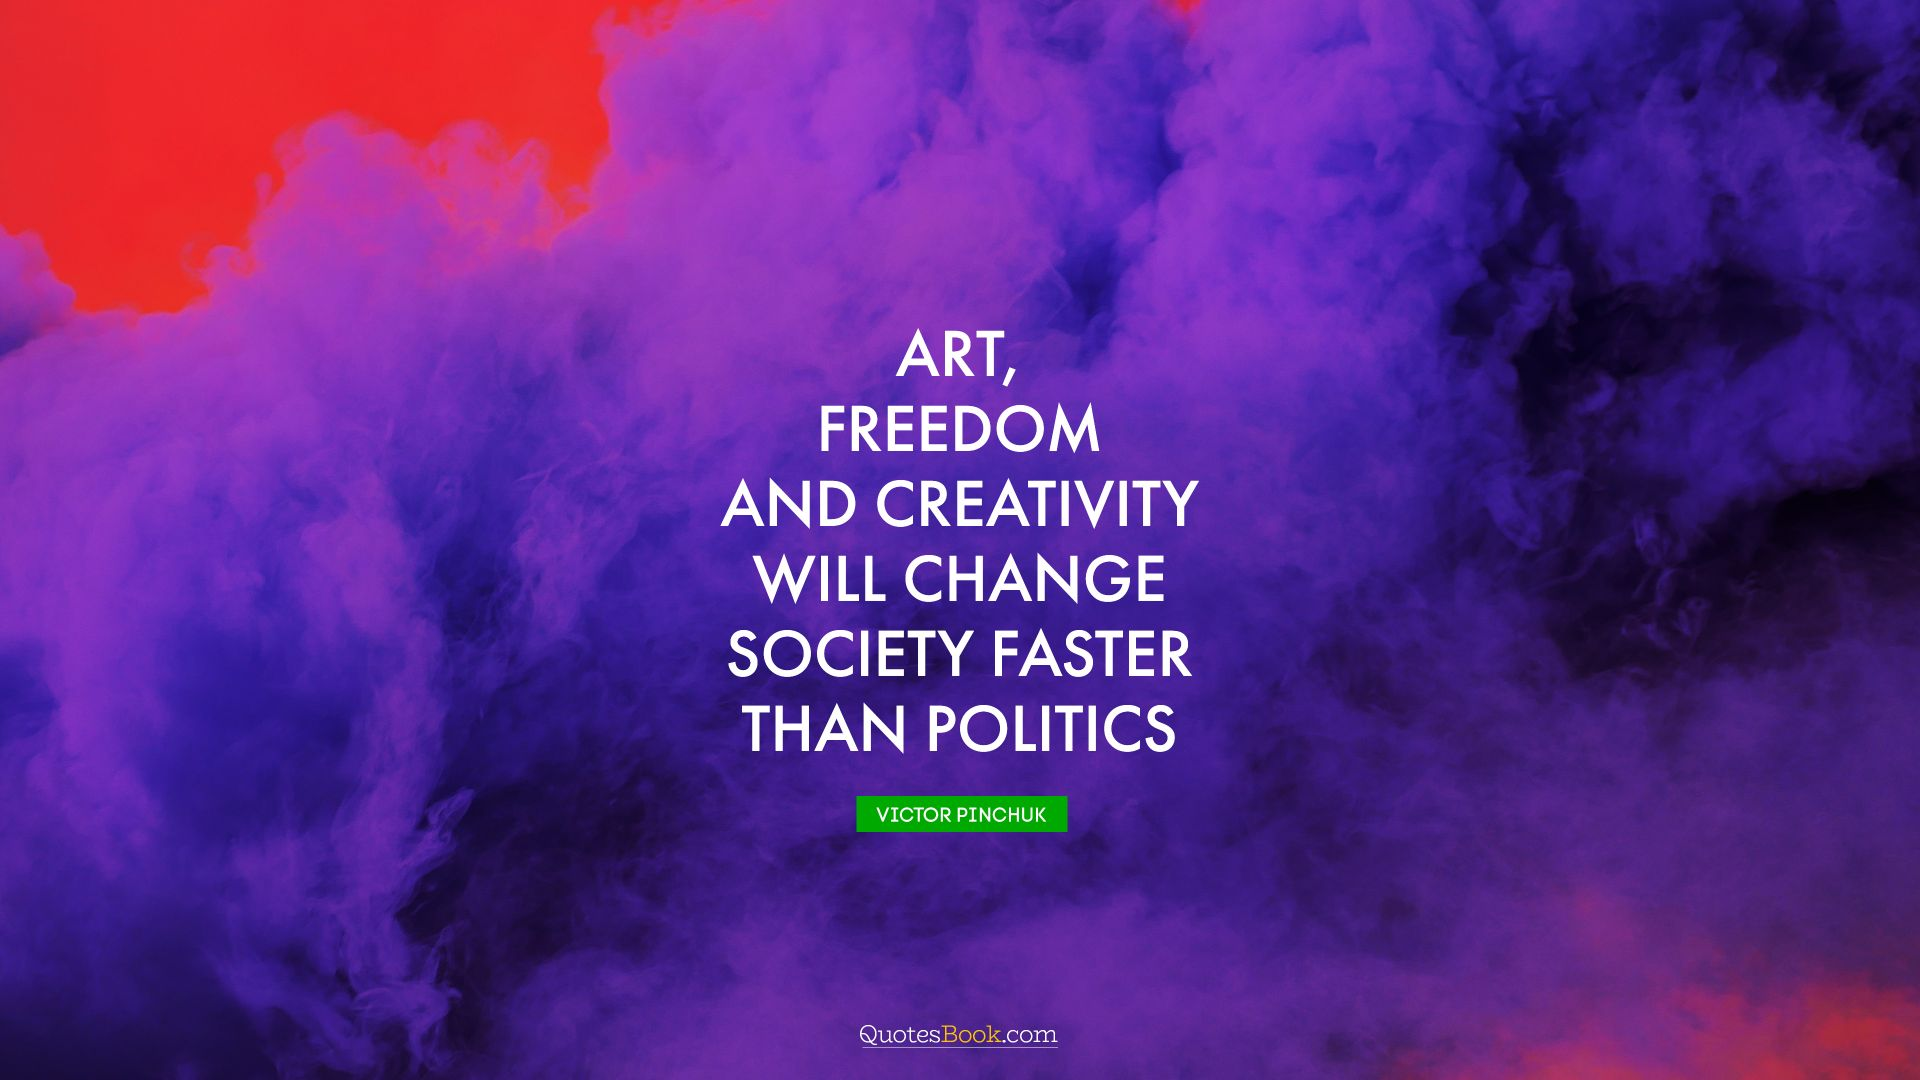 Art, freedom and creativity will change society faster than politics. - Quote by Victor Pinchuk